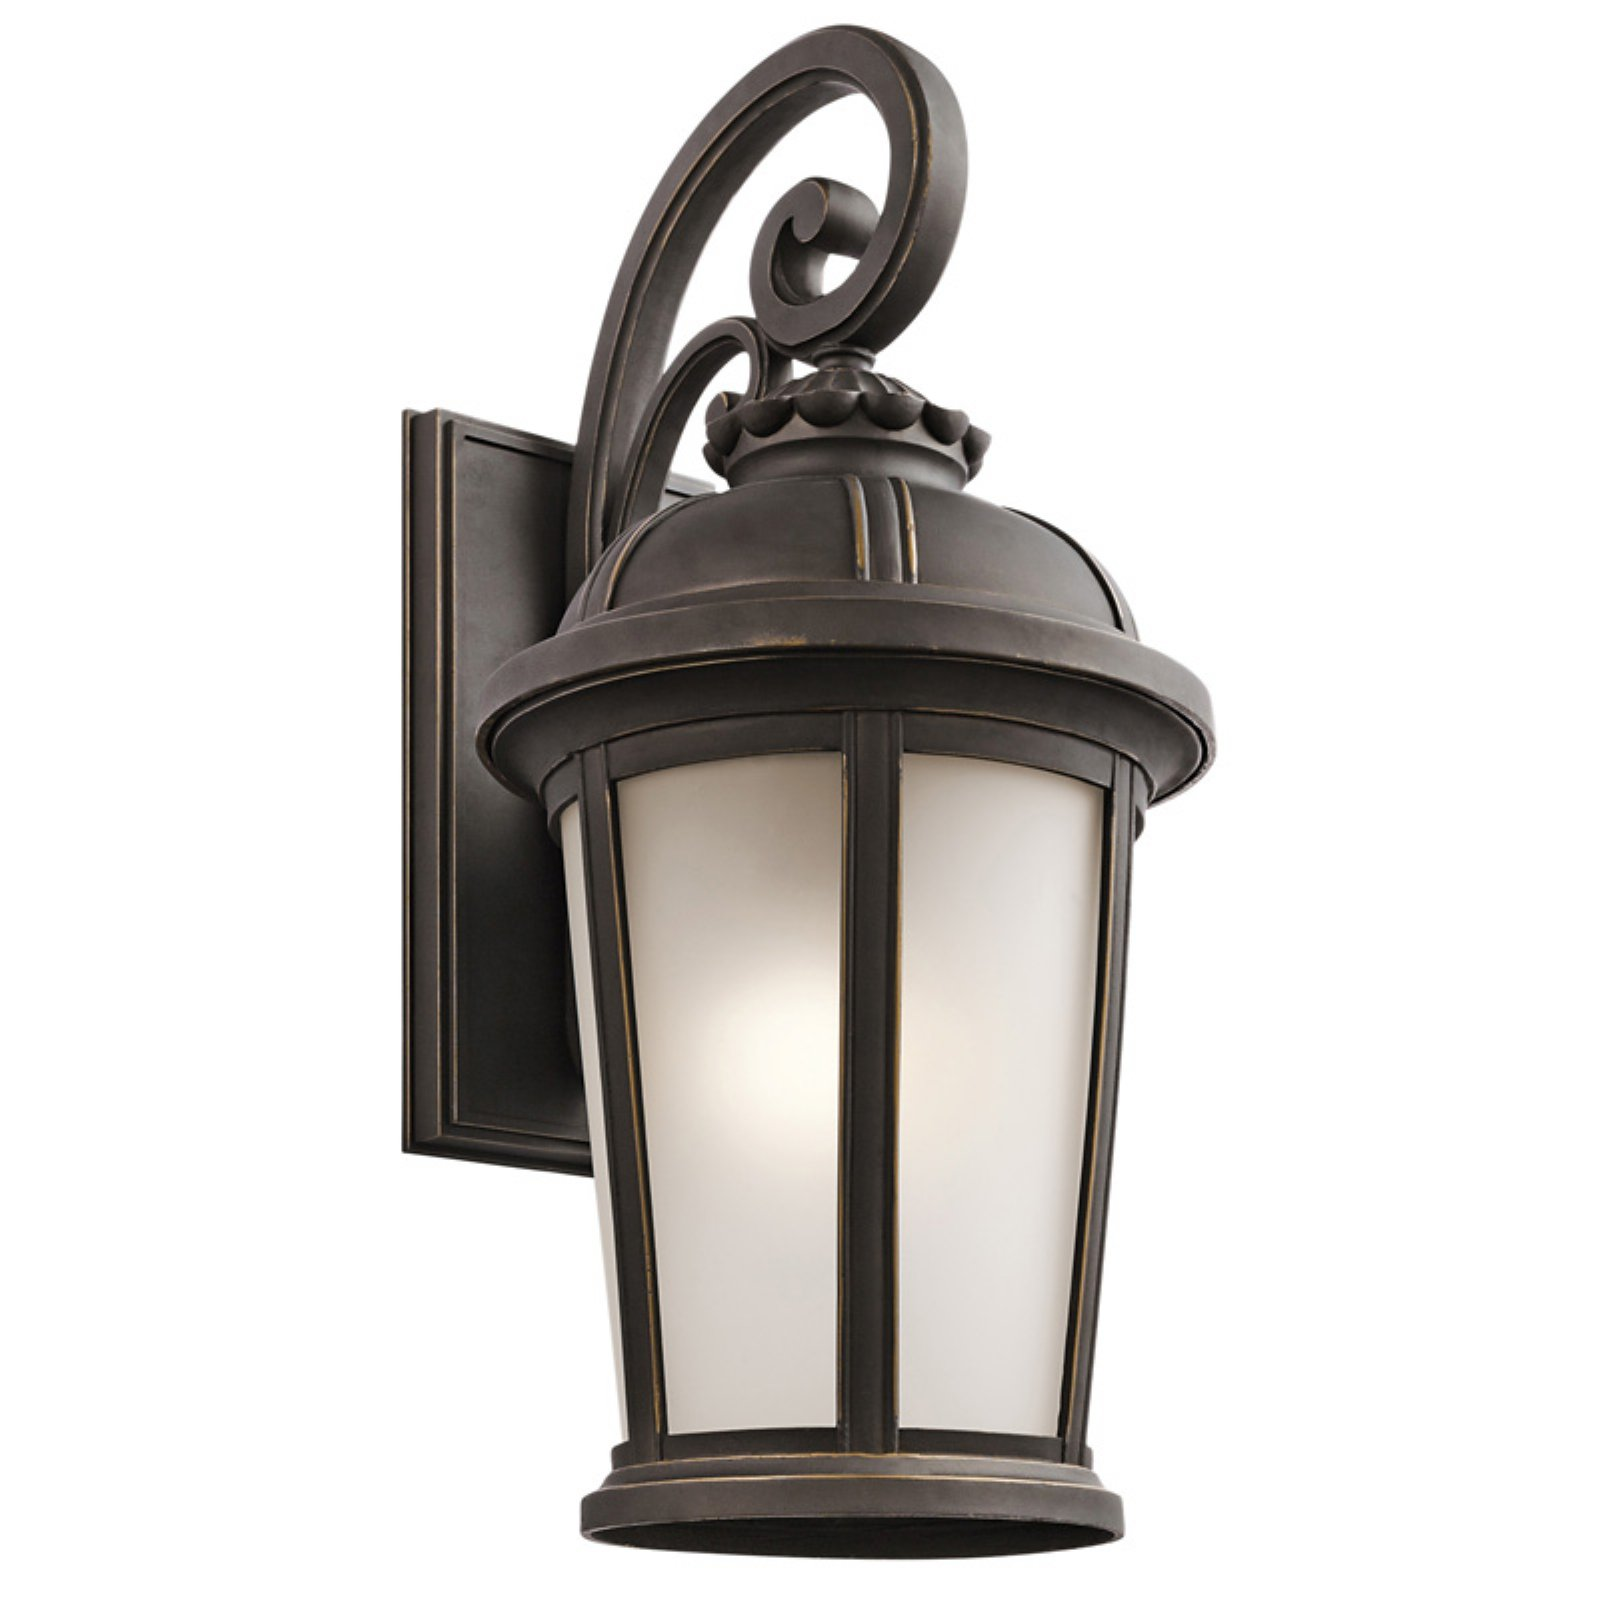 Kichler Ralston 1 Light Outdoor Wall Sconce - 25H in.